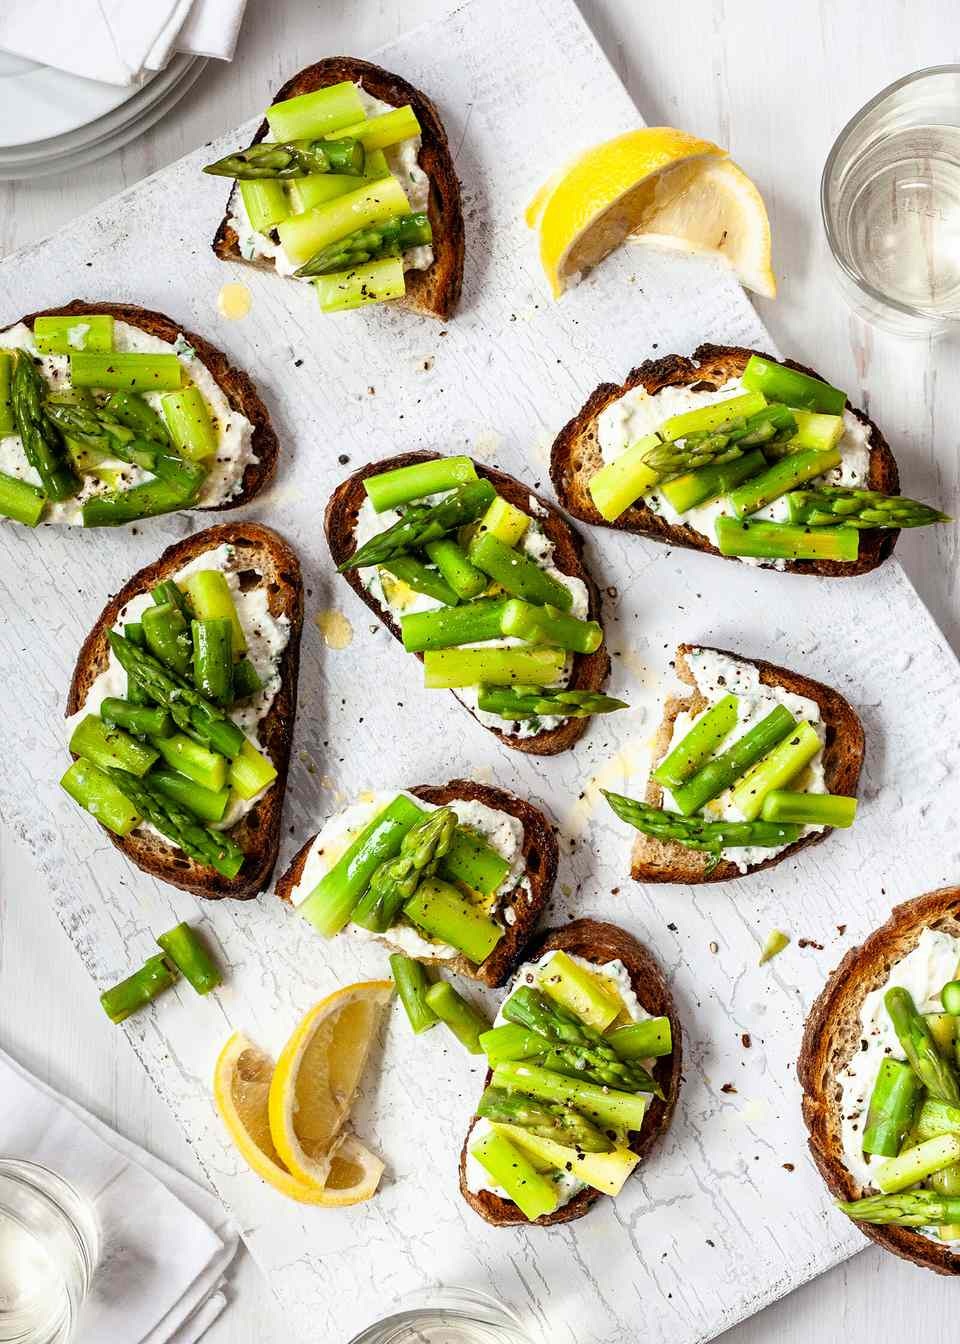 Asparagus Crostini Recipe - many bruschetta with asparagus and ricotta on a white background with lemon wedges